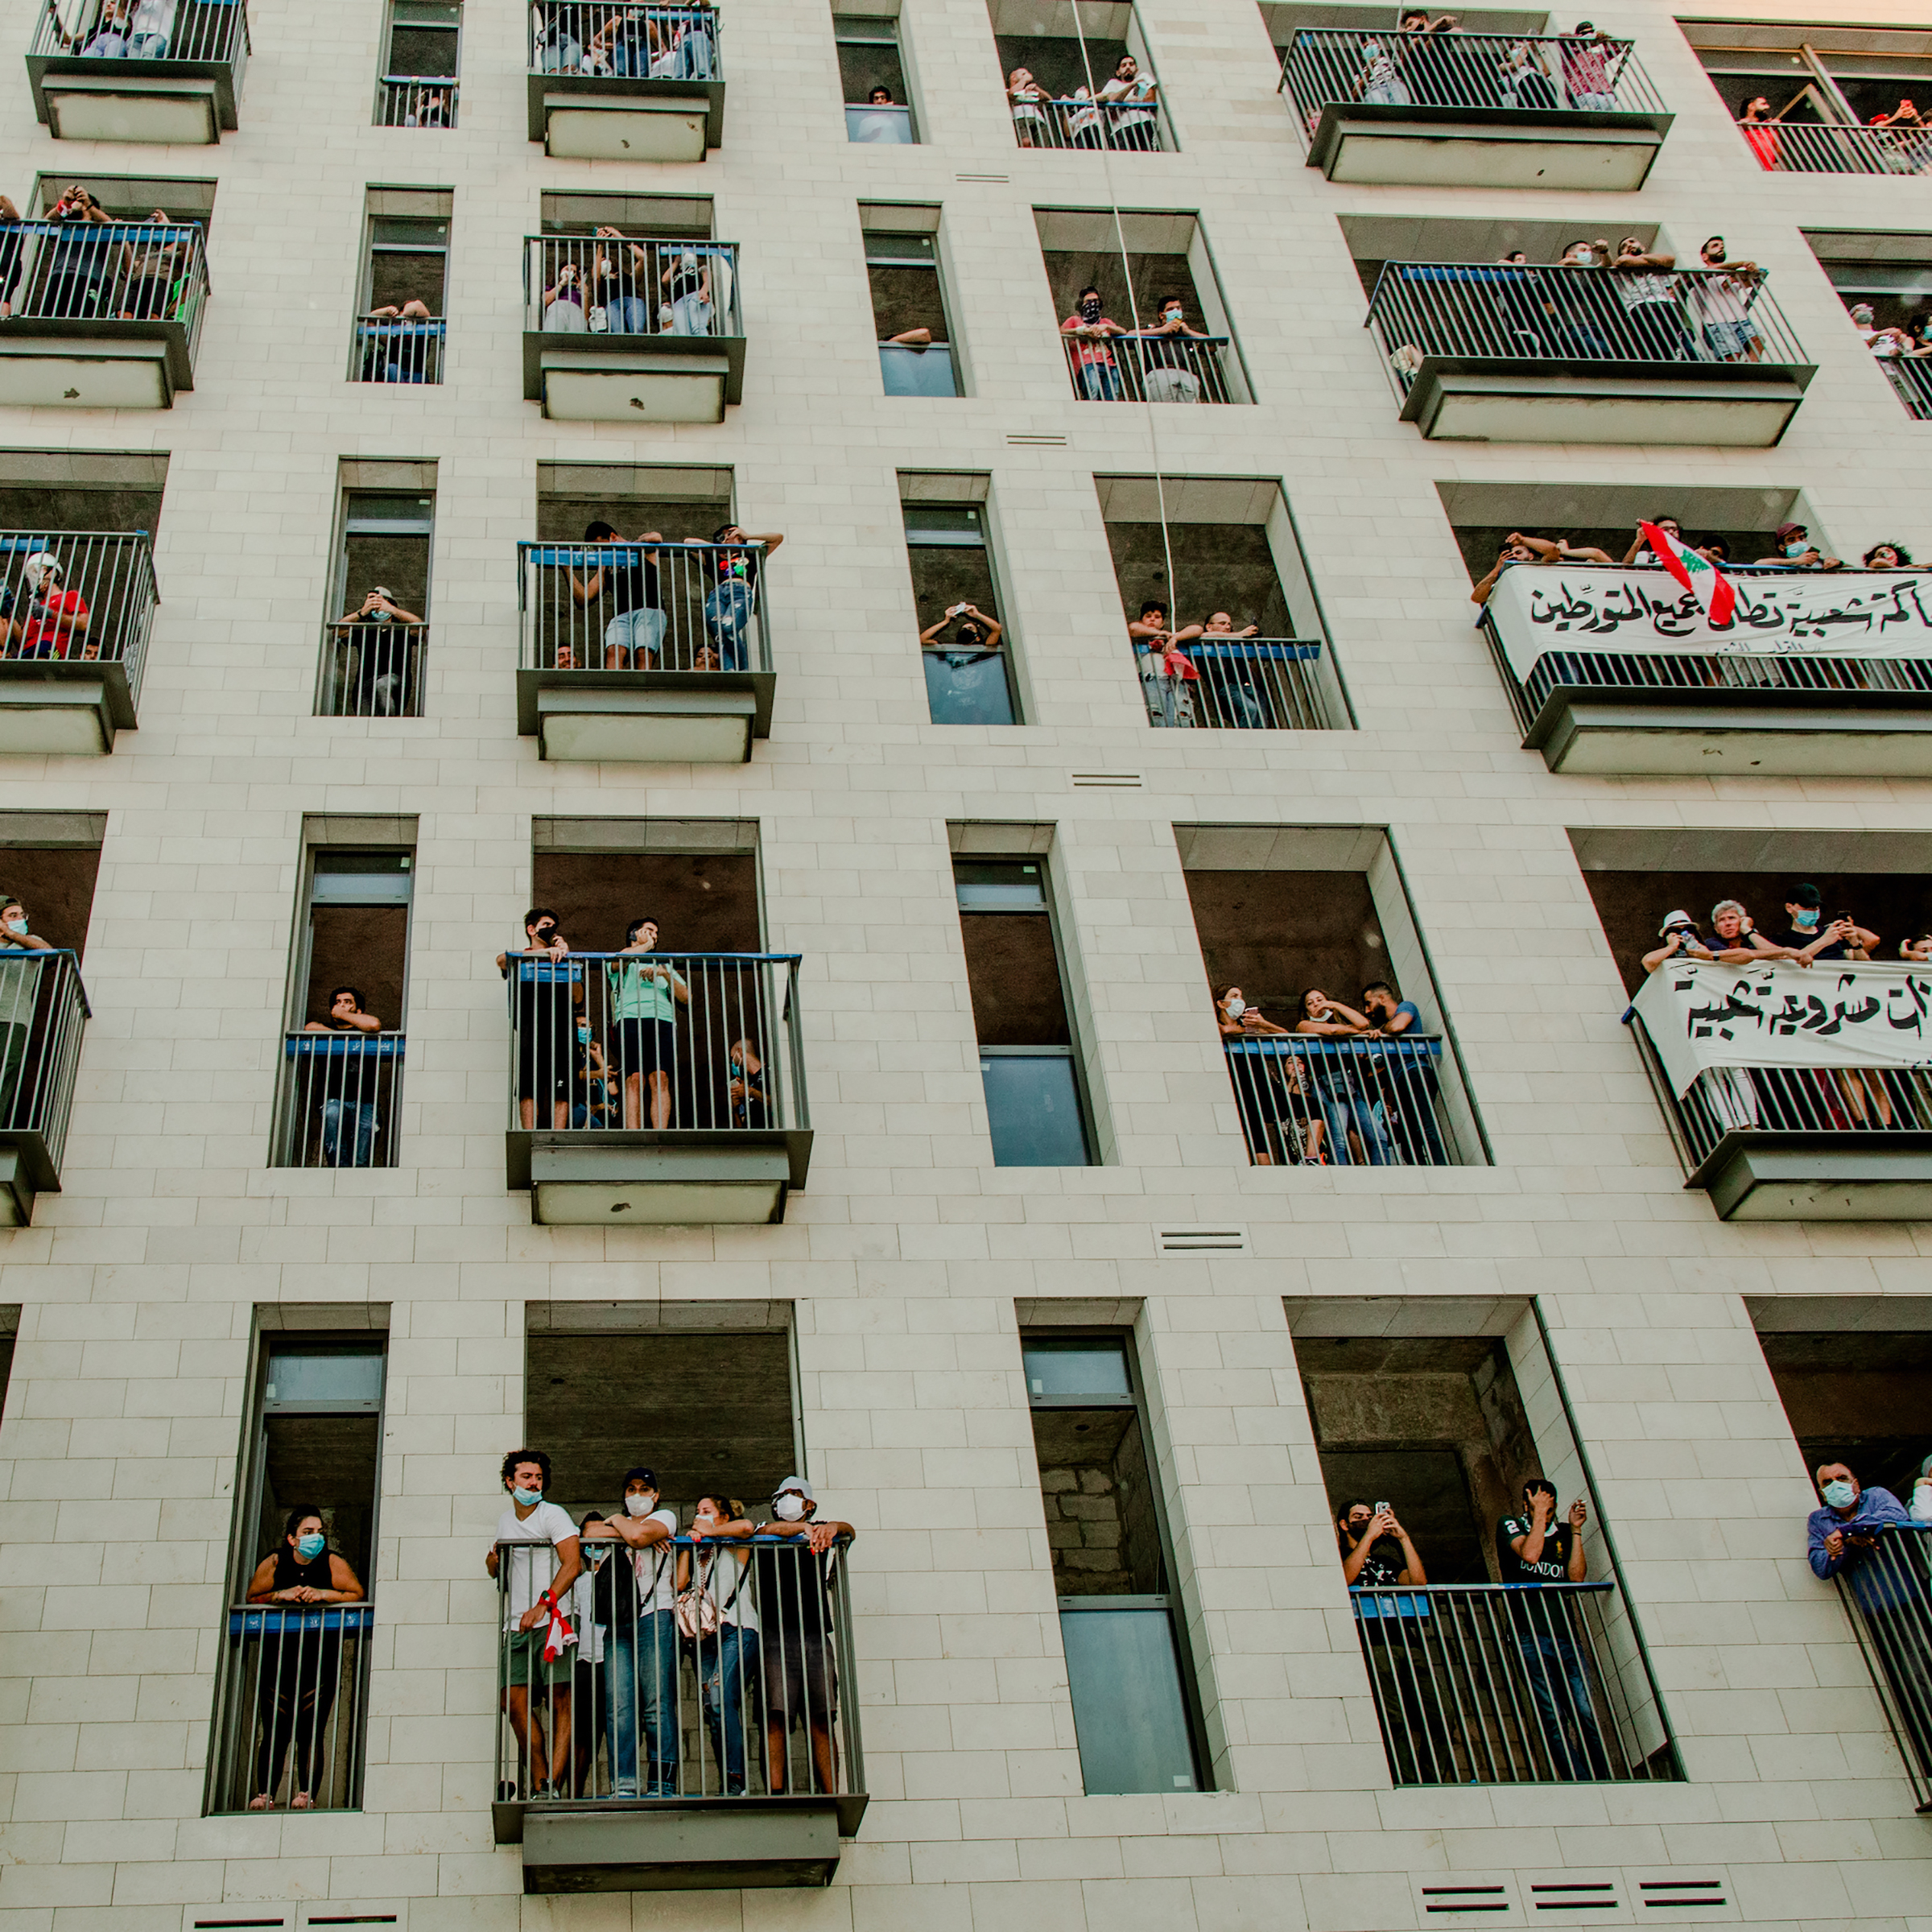 People gather on balconies during the demonstration. Protesters say negligence and corruption across Lebanon's political system contributed to the disaster.